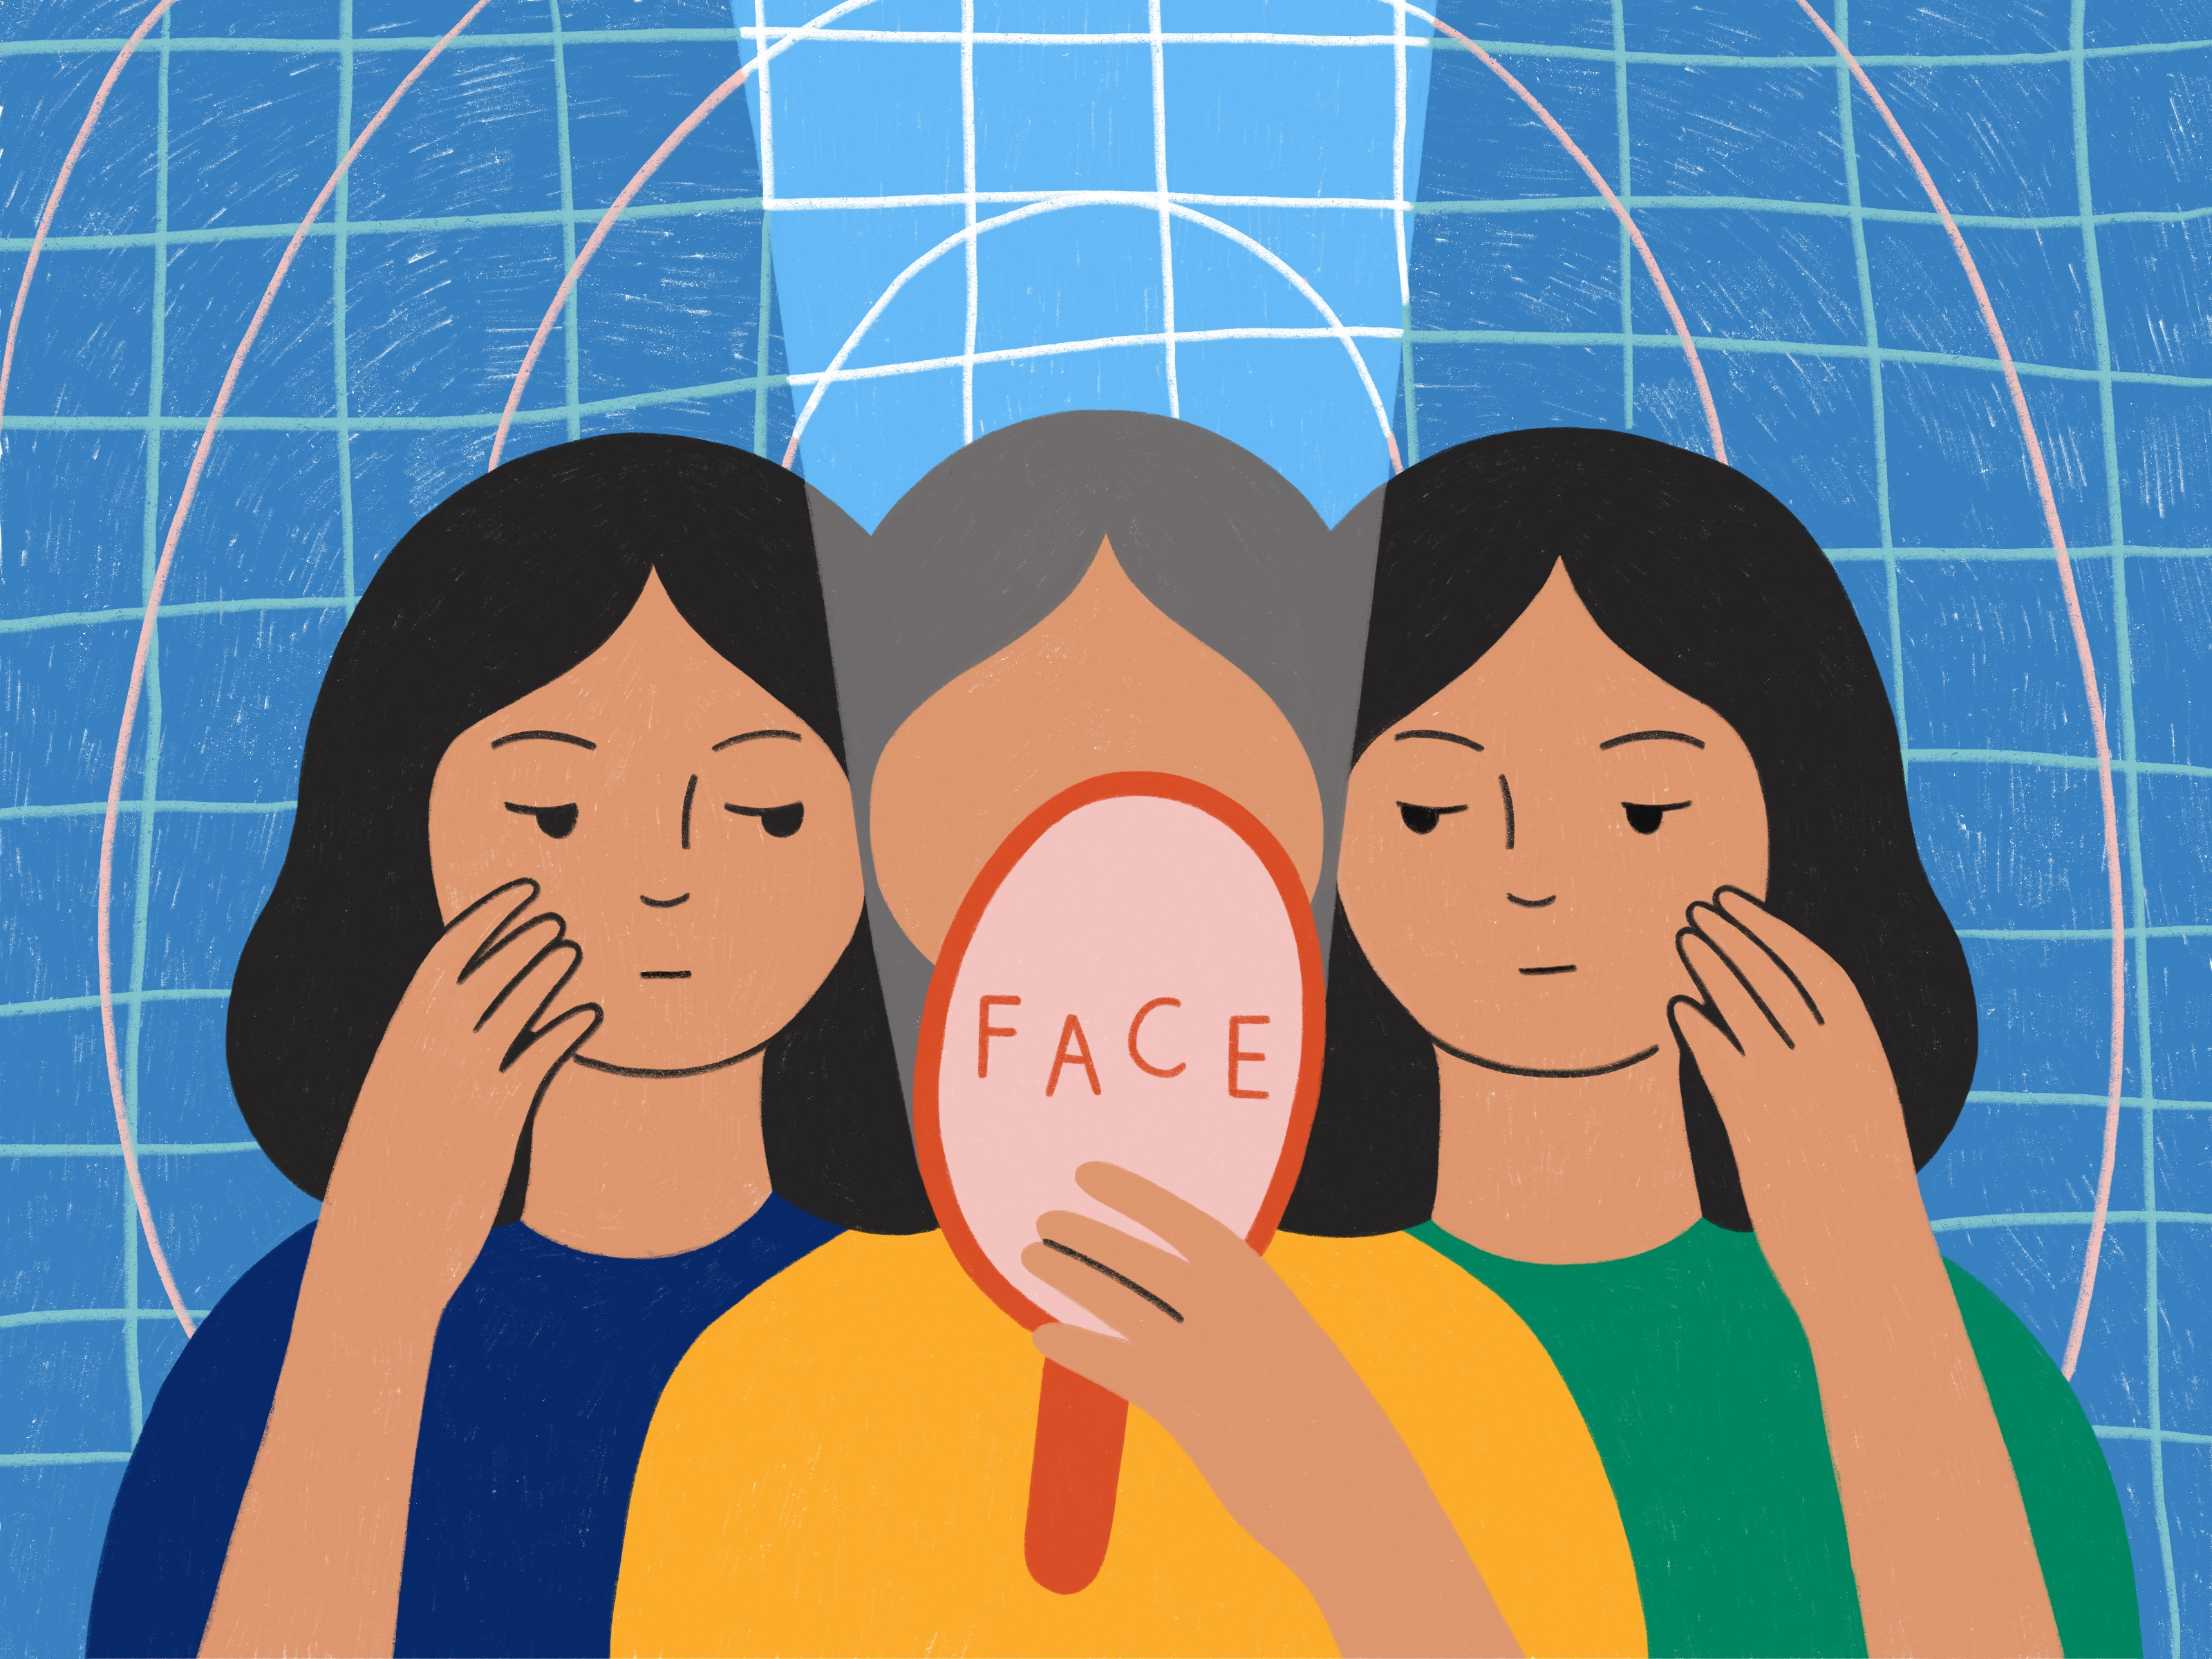 Illustration of three people looking into one hand mirror, held by the person at the centre, who has no facial features.